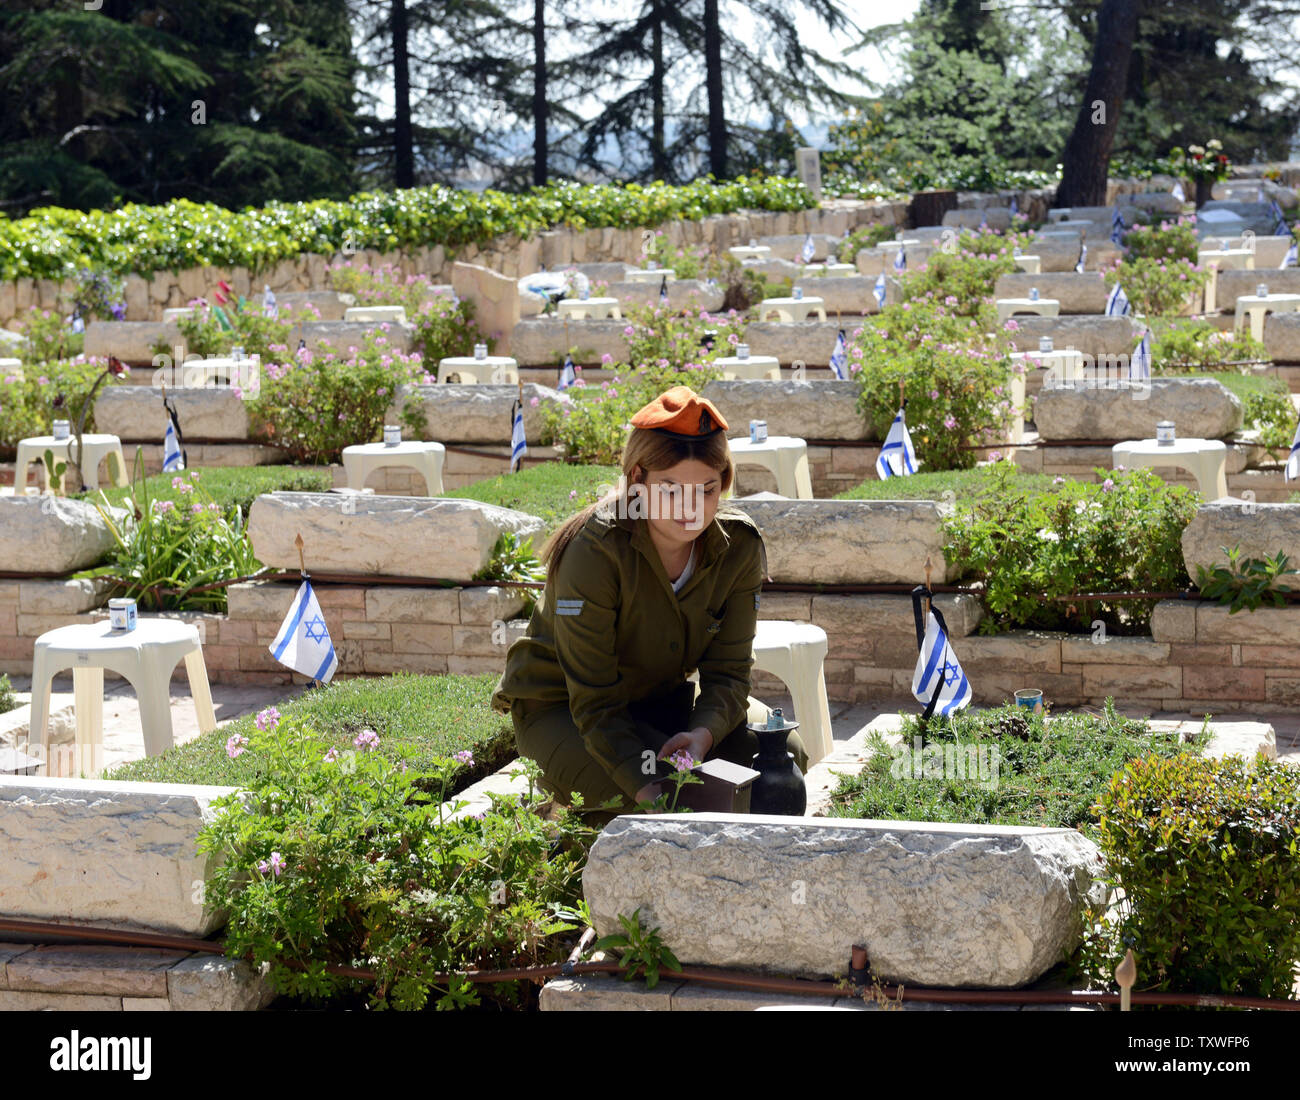 An Israeli soldier decorates the graves of fallen soldiers with national flags with black ribbons for Remembrance Day at the Mt. Herzl Military Cemetery in Jerusalem, Israel, April 14, 2013. Israel's Remembrance Day for fallen soldiers begins at sunset with a one minute siren.  UPI/Debbie Hill Stock Photo